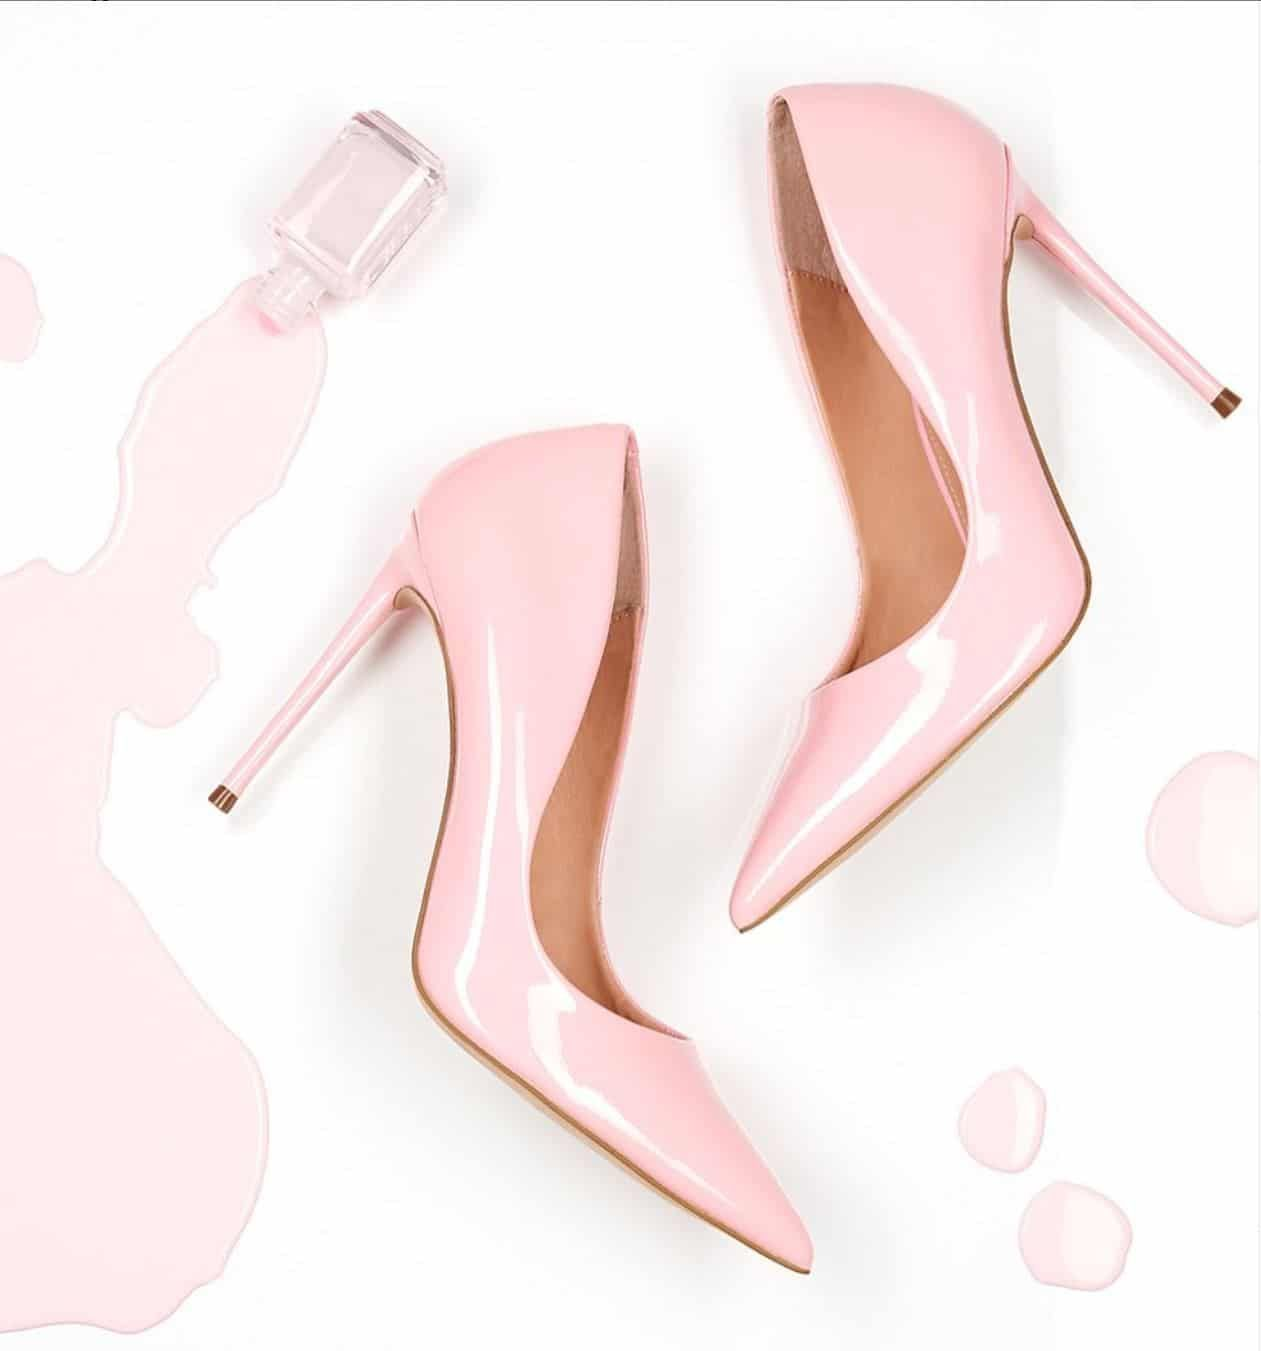 Details about  /Women High Block Heel Mid Calf Boot Pump Pointed Toe Stretch Transparent Shoes D